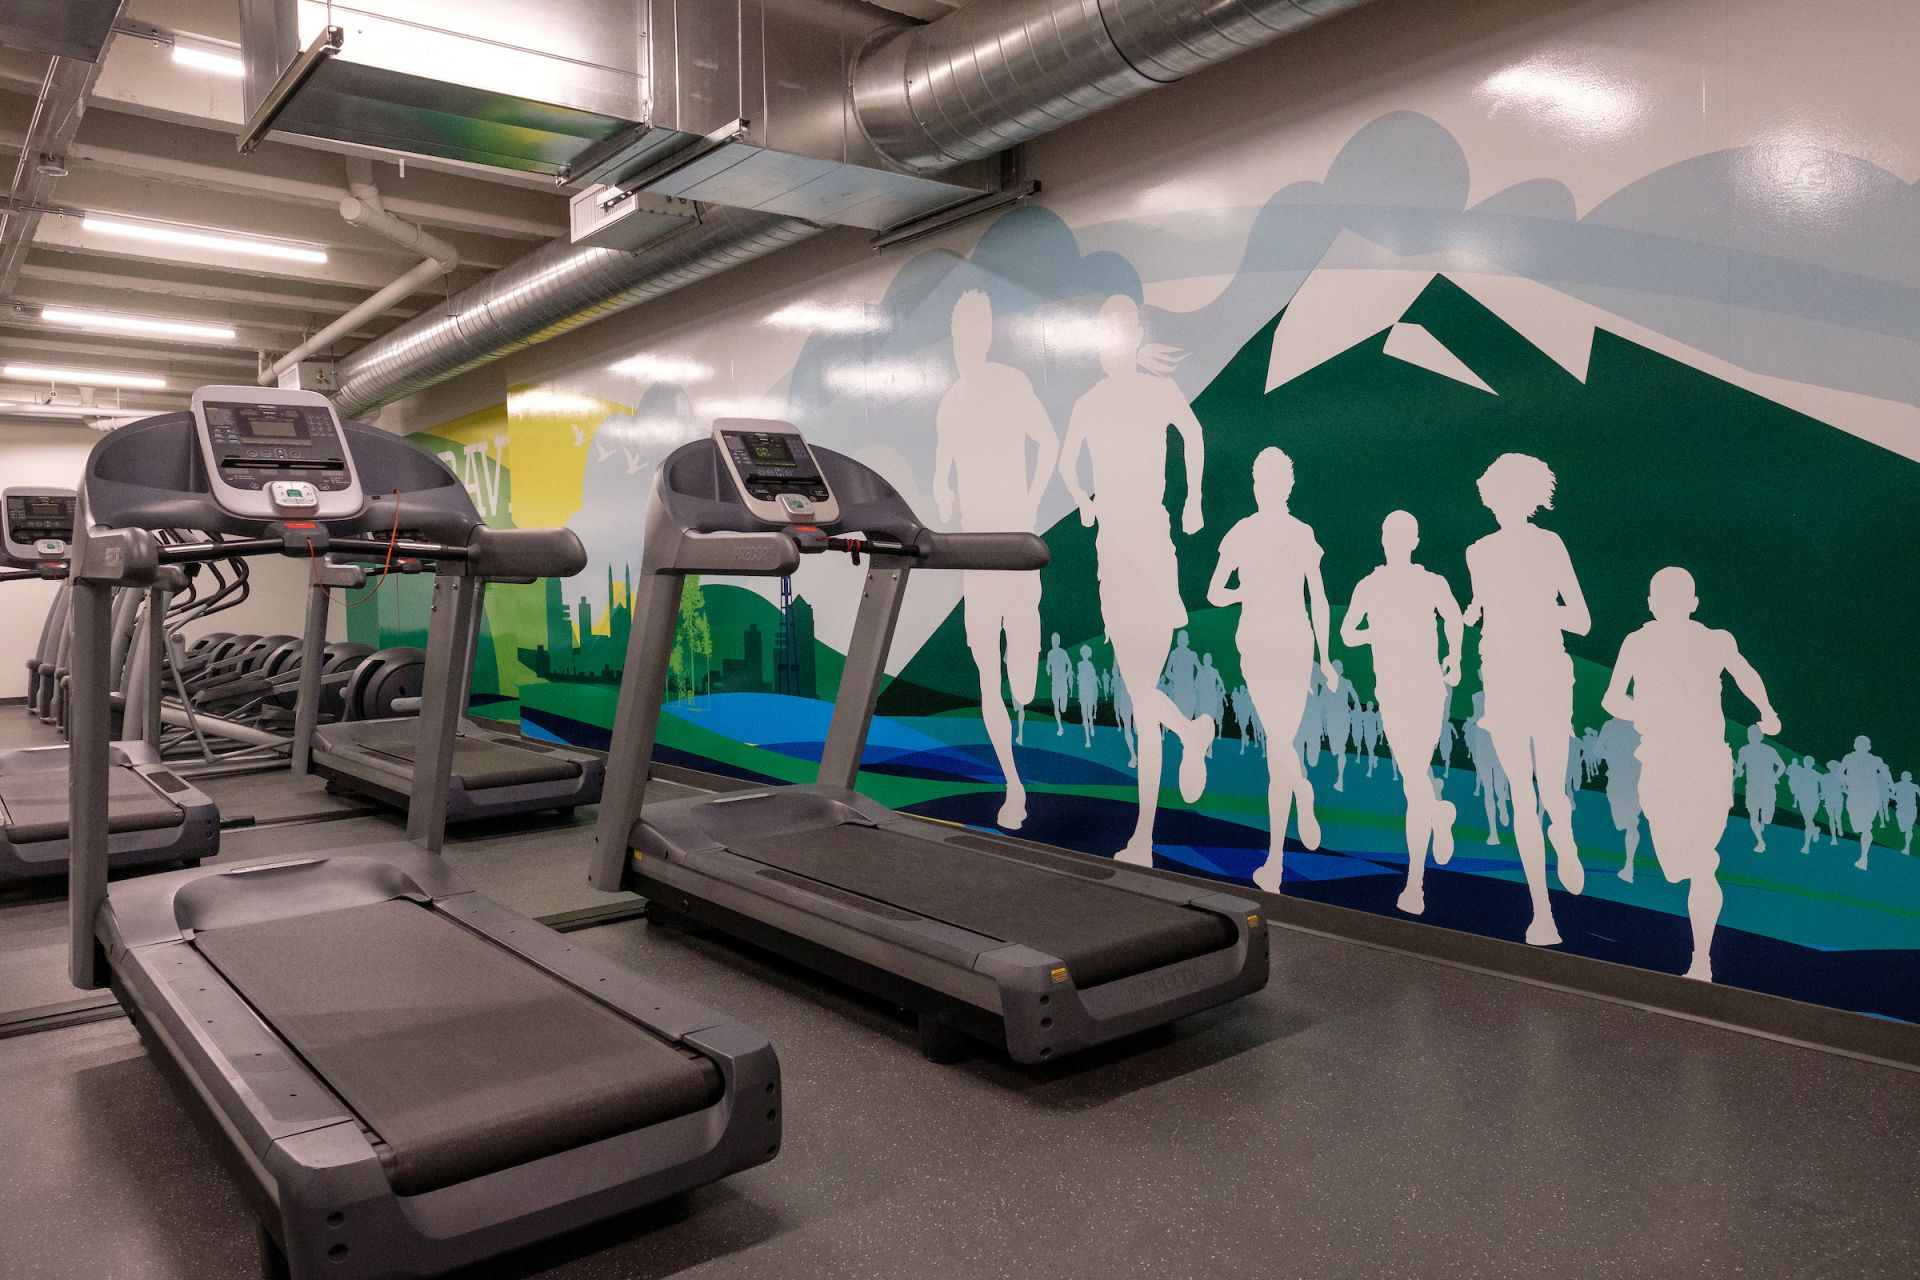 Set against a mural backdrop of runners at Greenlake, the cardio workout room is a key feature of a number of our physical education classes and is used for cross training by a variety of sports. This space is also used as an on-campus fitness center before and after school, adding to wellness opportunities for faculty/staff and students.